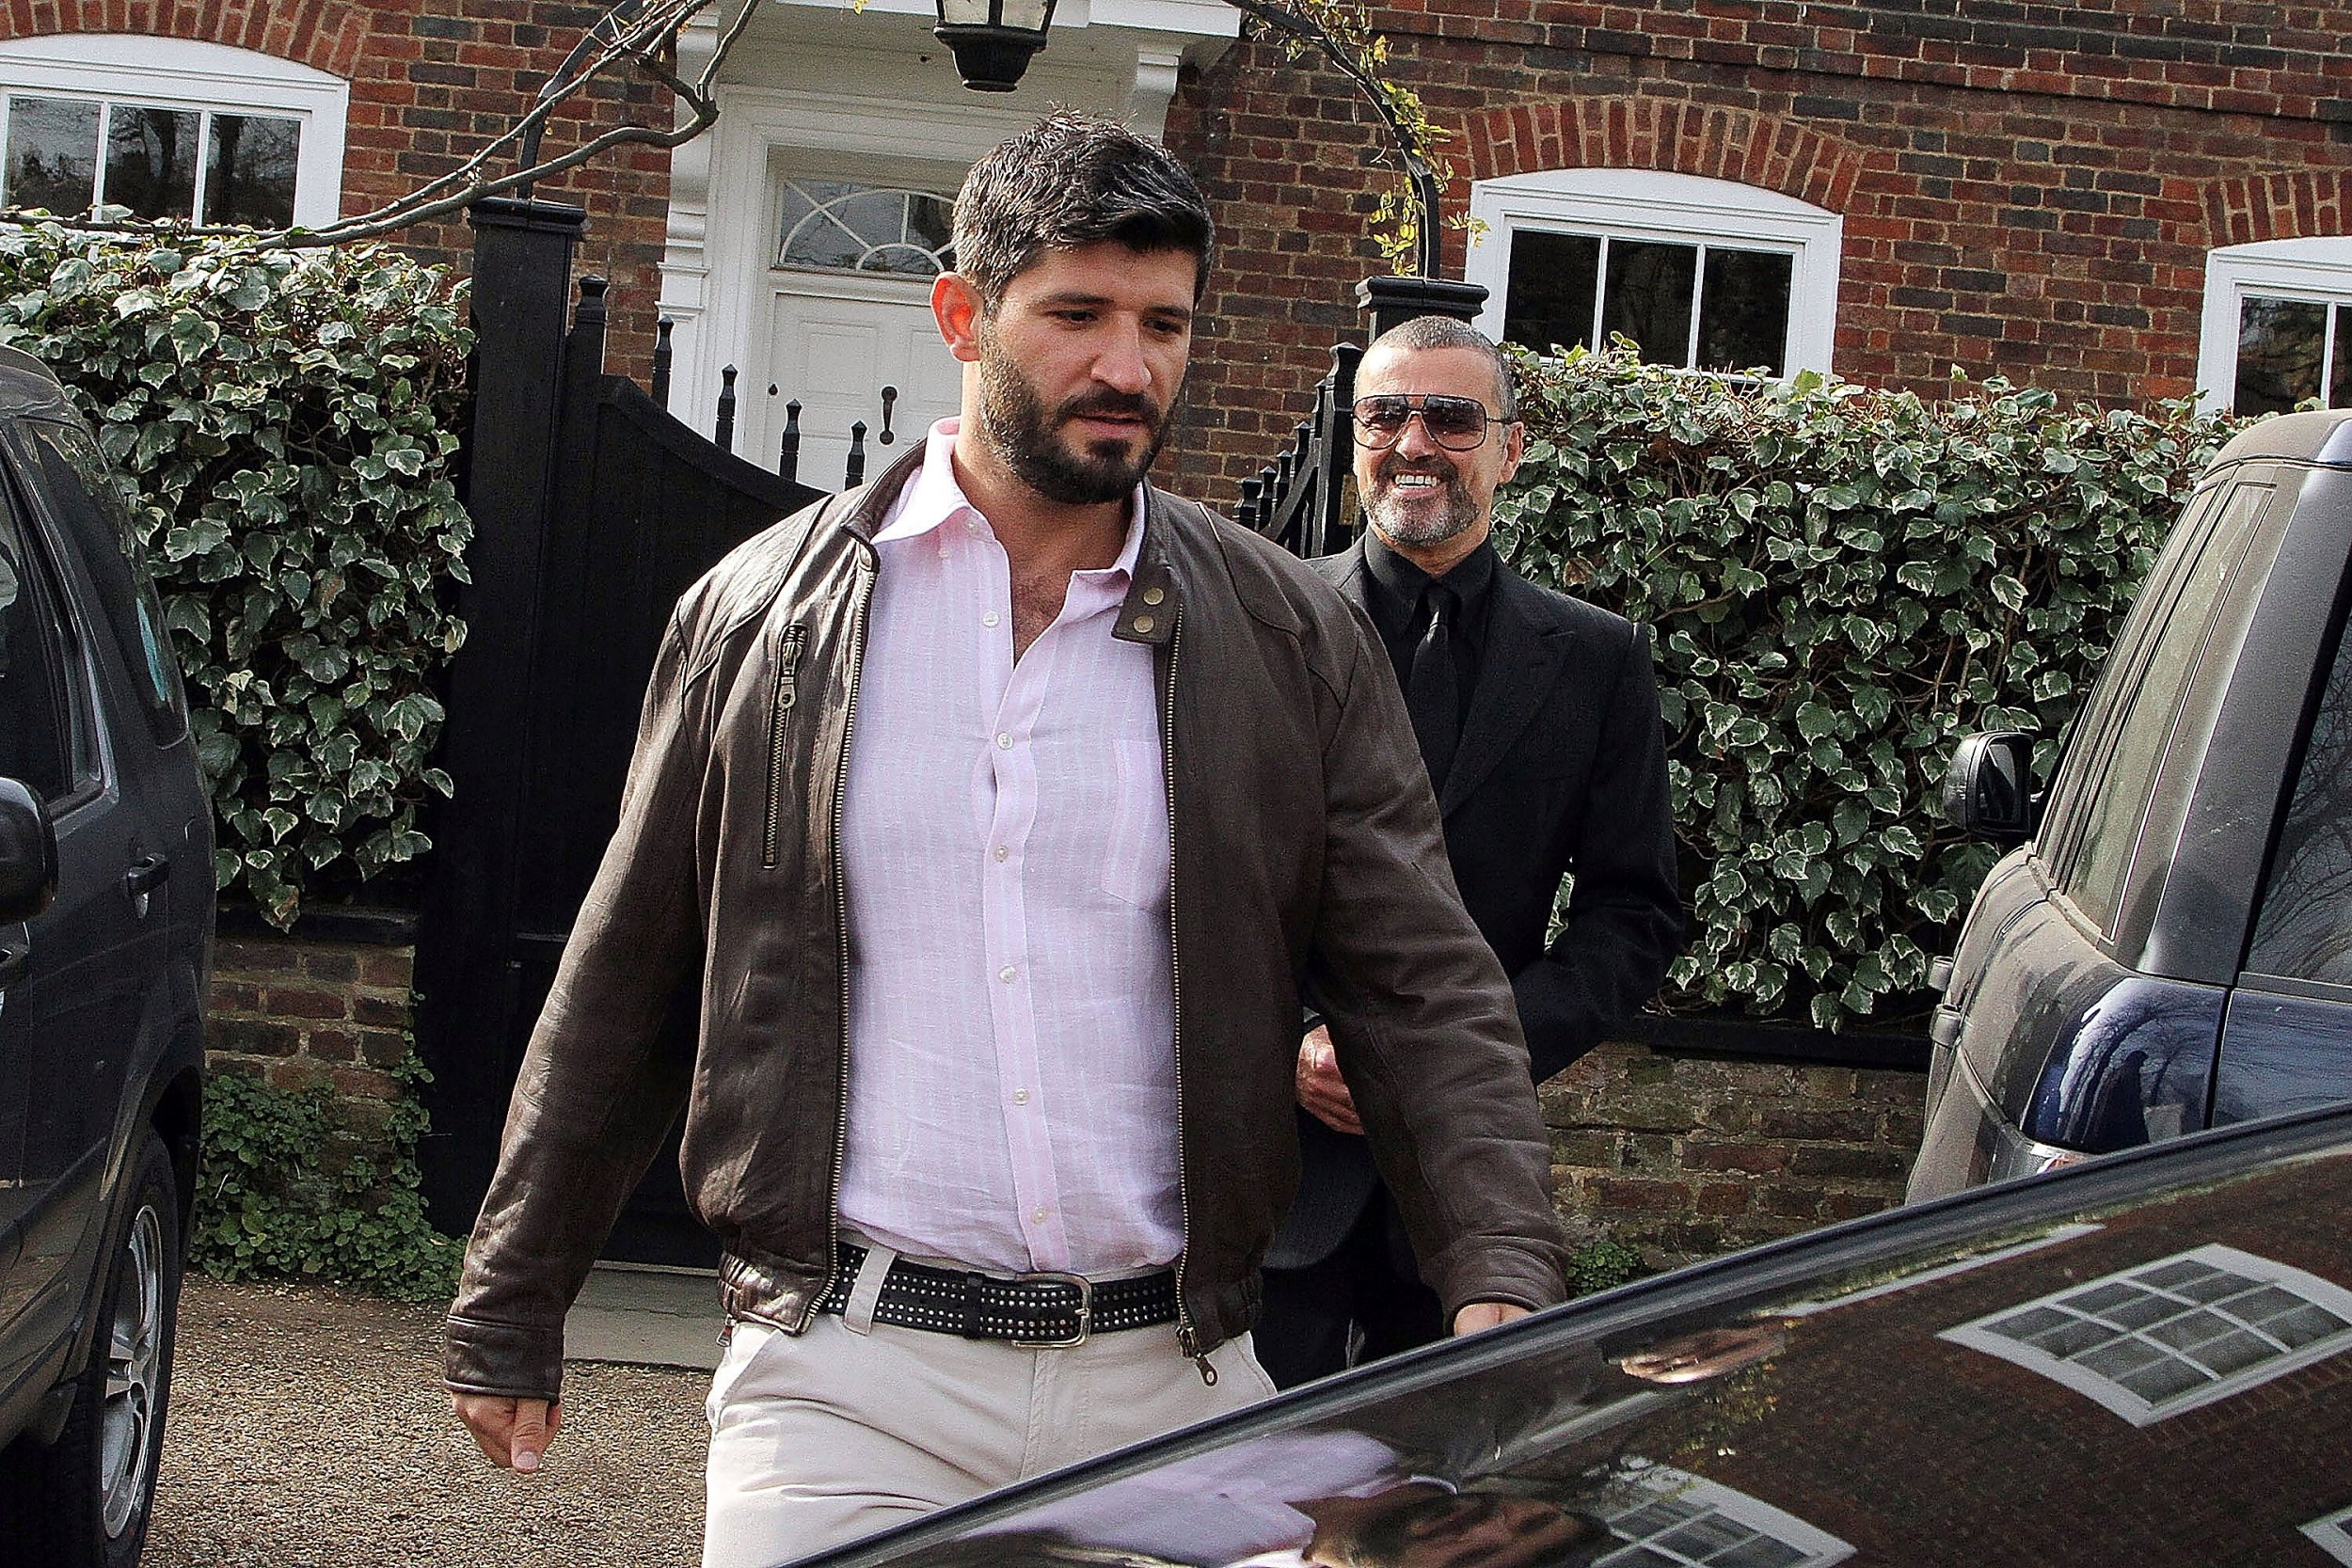 George Michael's boyfriend pays tribute (Getty) LONDON, UNITED KINGDOM - MARCH 14: George Michael and Fadi Fawaz are seen on March 14, 2012 in London, United Kingdom. (Photo by JJ/ROCHAS/Bauer-Griffin/GC Images)